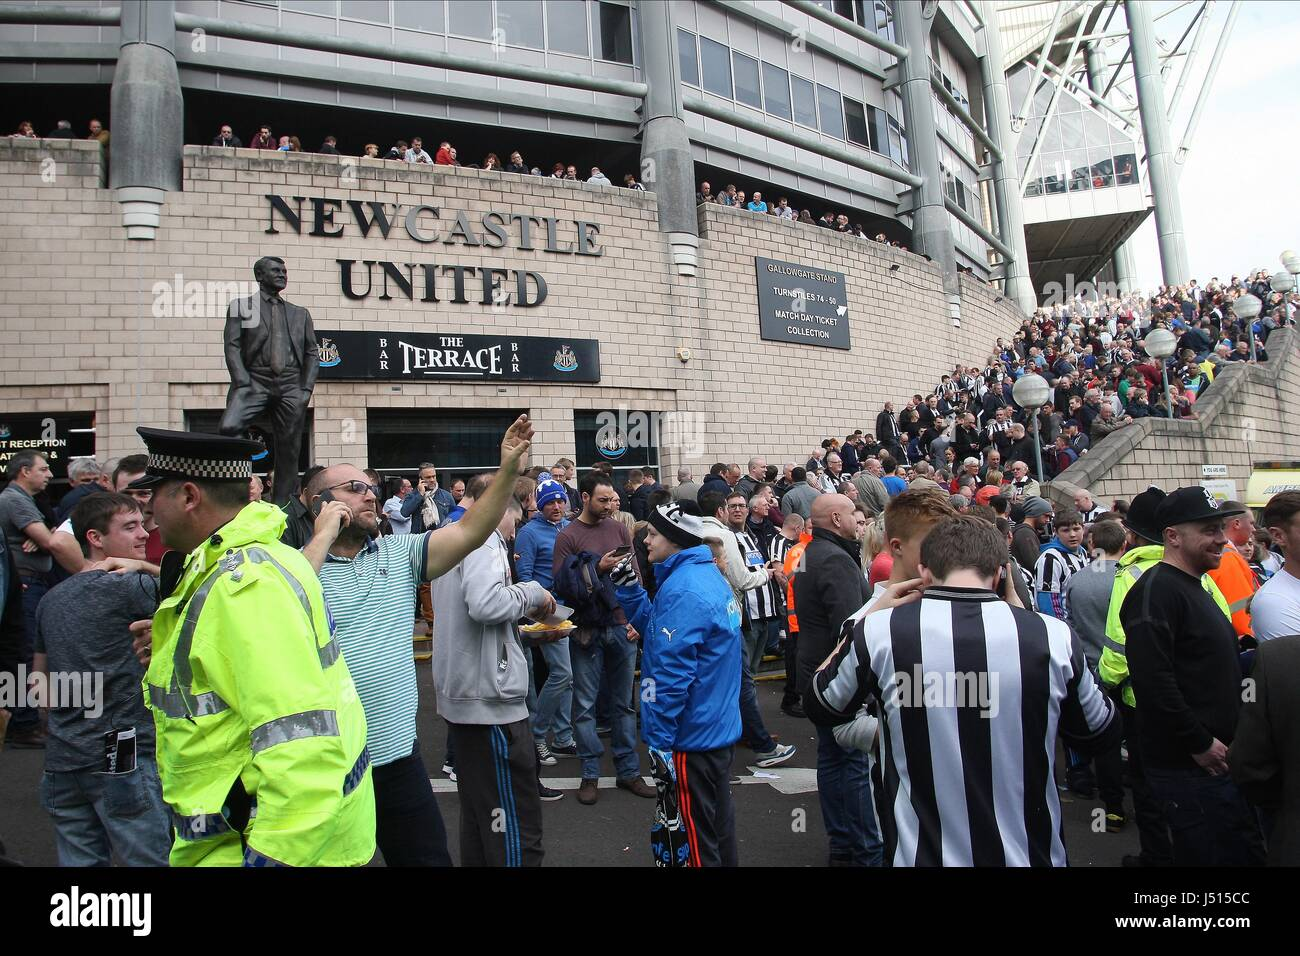 KICK OFF IS DELAYED AT ST JAME NEWCASTLE UNITED V LEICESTER C ST JAMES PARK NEWCASTLE ENGLAND 18 October 2014 - Stock Image